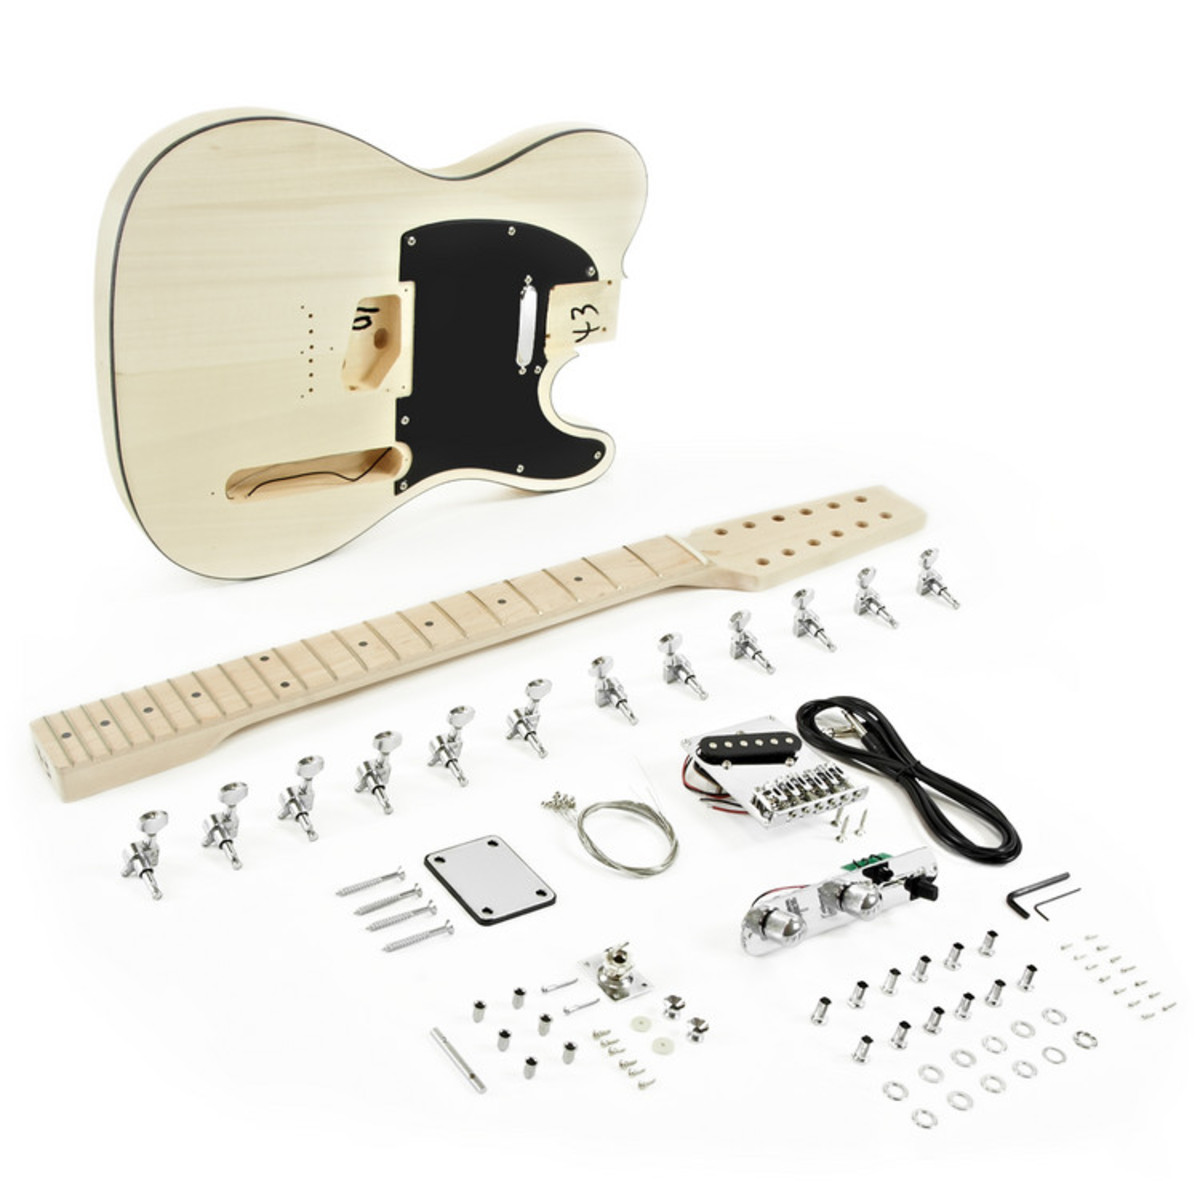 12 string knoxville electric guitar diy kit nearly new at gear4music. Black Bedroom Furniture Sets. Home Design Ideas